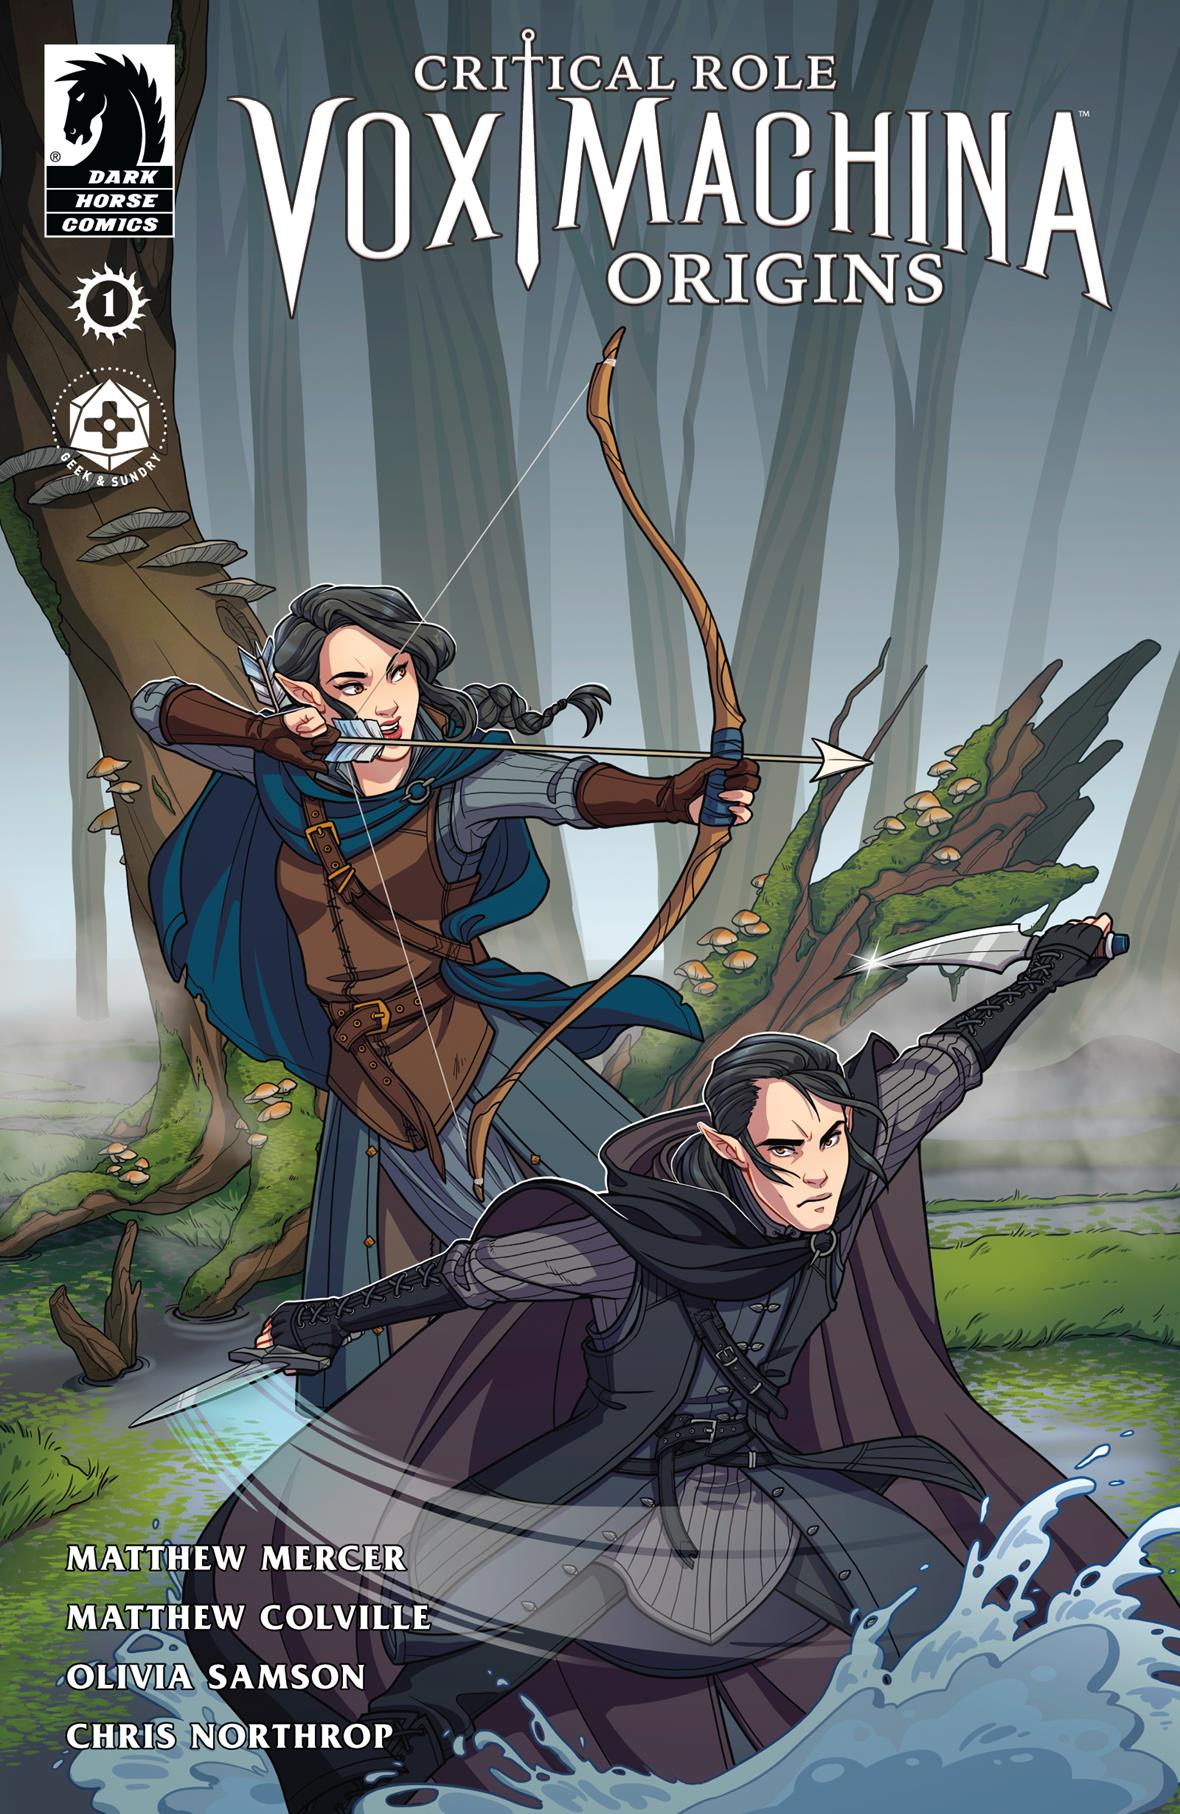 Geek Sundry Partners With Dark Horse To Bring The World Of